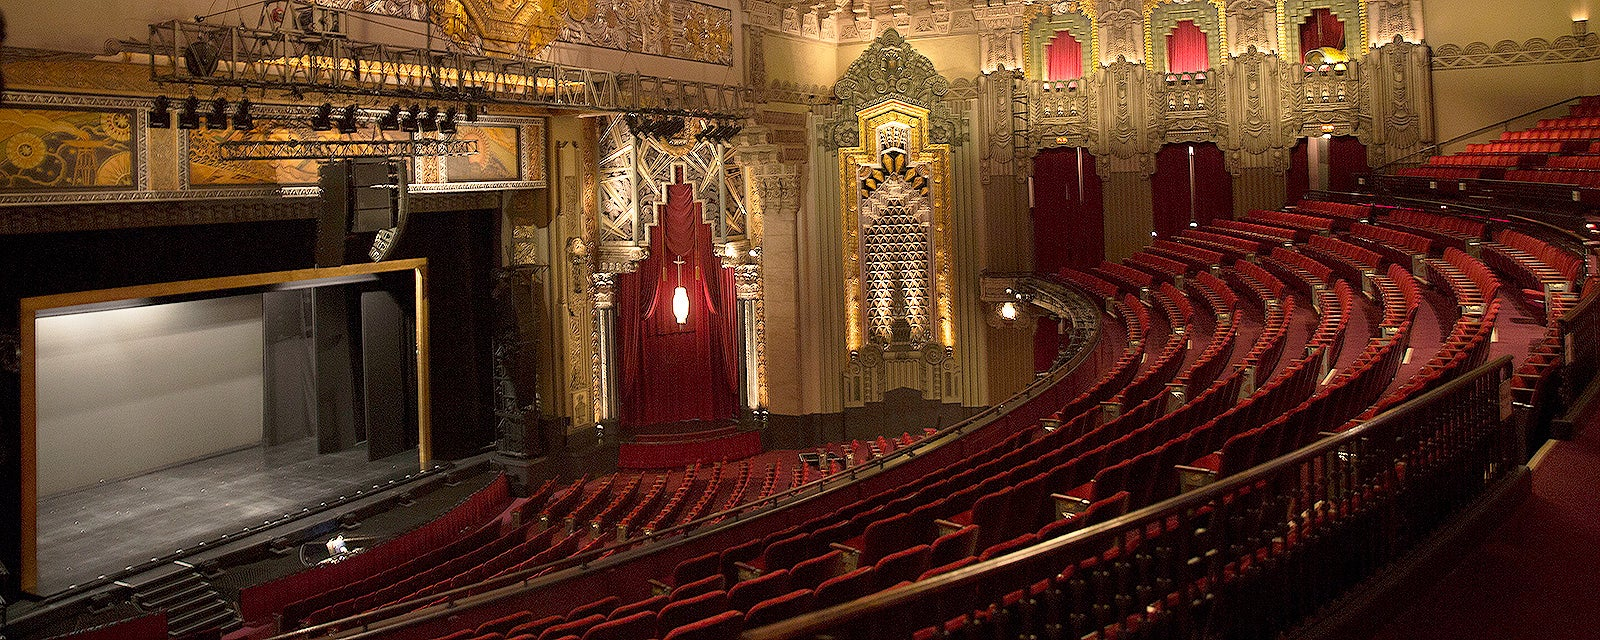 The Hollywood Pantages Theatre (formerly known as the RKO Pantages Theatre) is an exciting complex located on the bustling area of Hollywood and Vine in downtown Hollywood, Los Angeles, California. The venue has a capacity of 2, Built in Art Deco style, this stunning theatre hosts many events including broadway shows, concerts, and other social events.